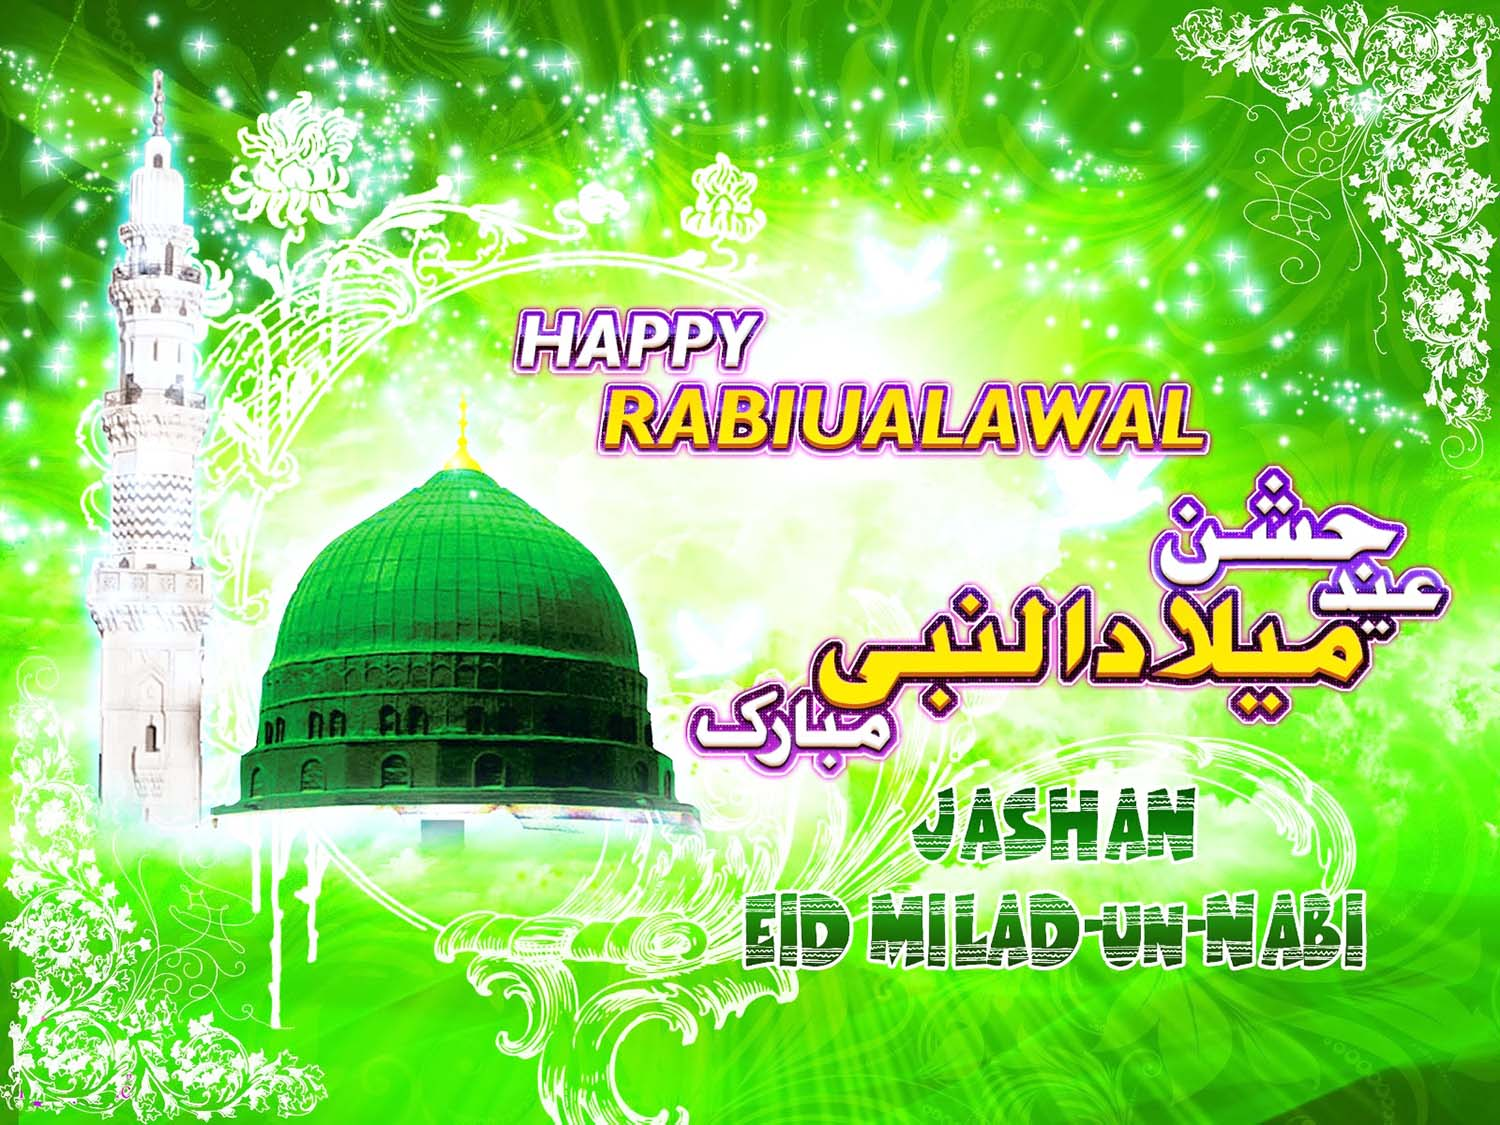 eid milad greetings